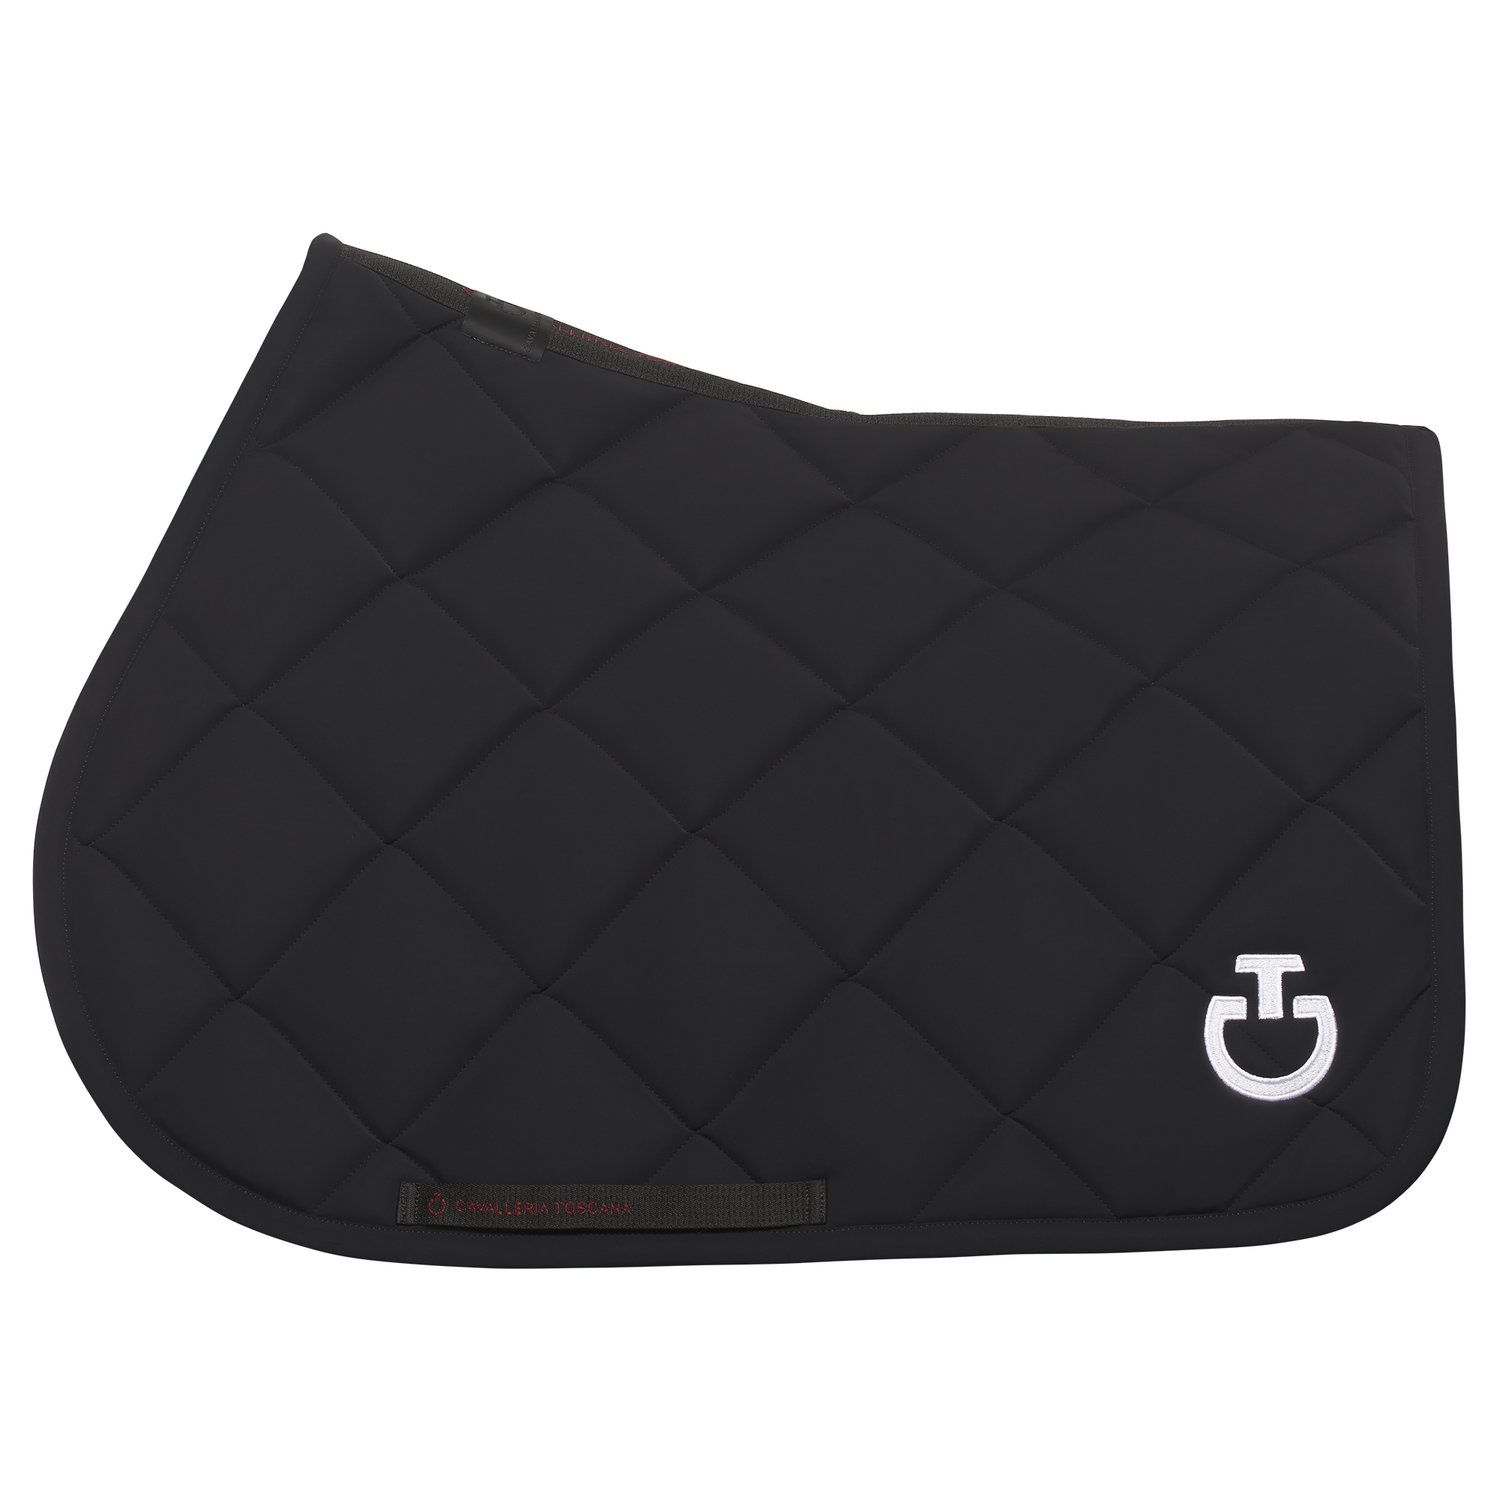 Rhombi-quilted jumping saddle pad